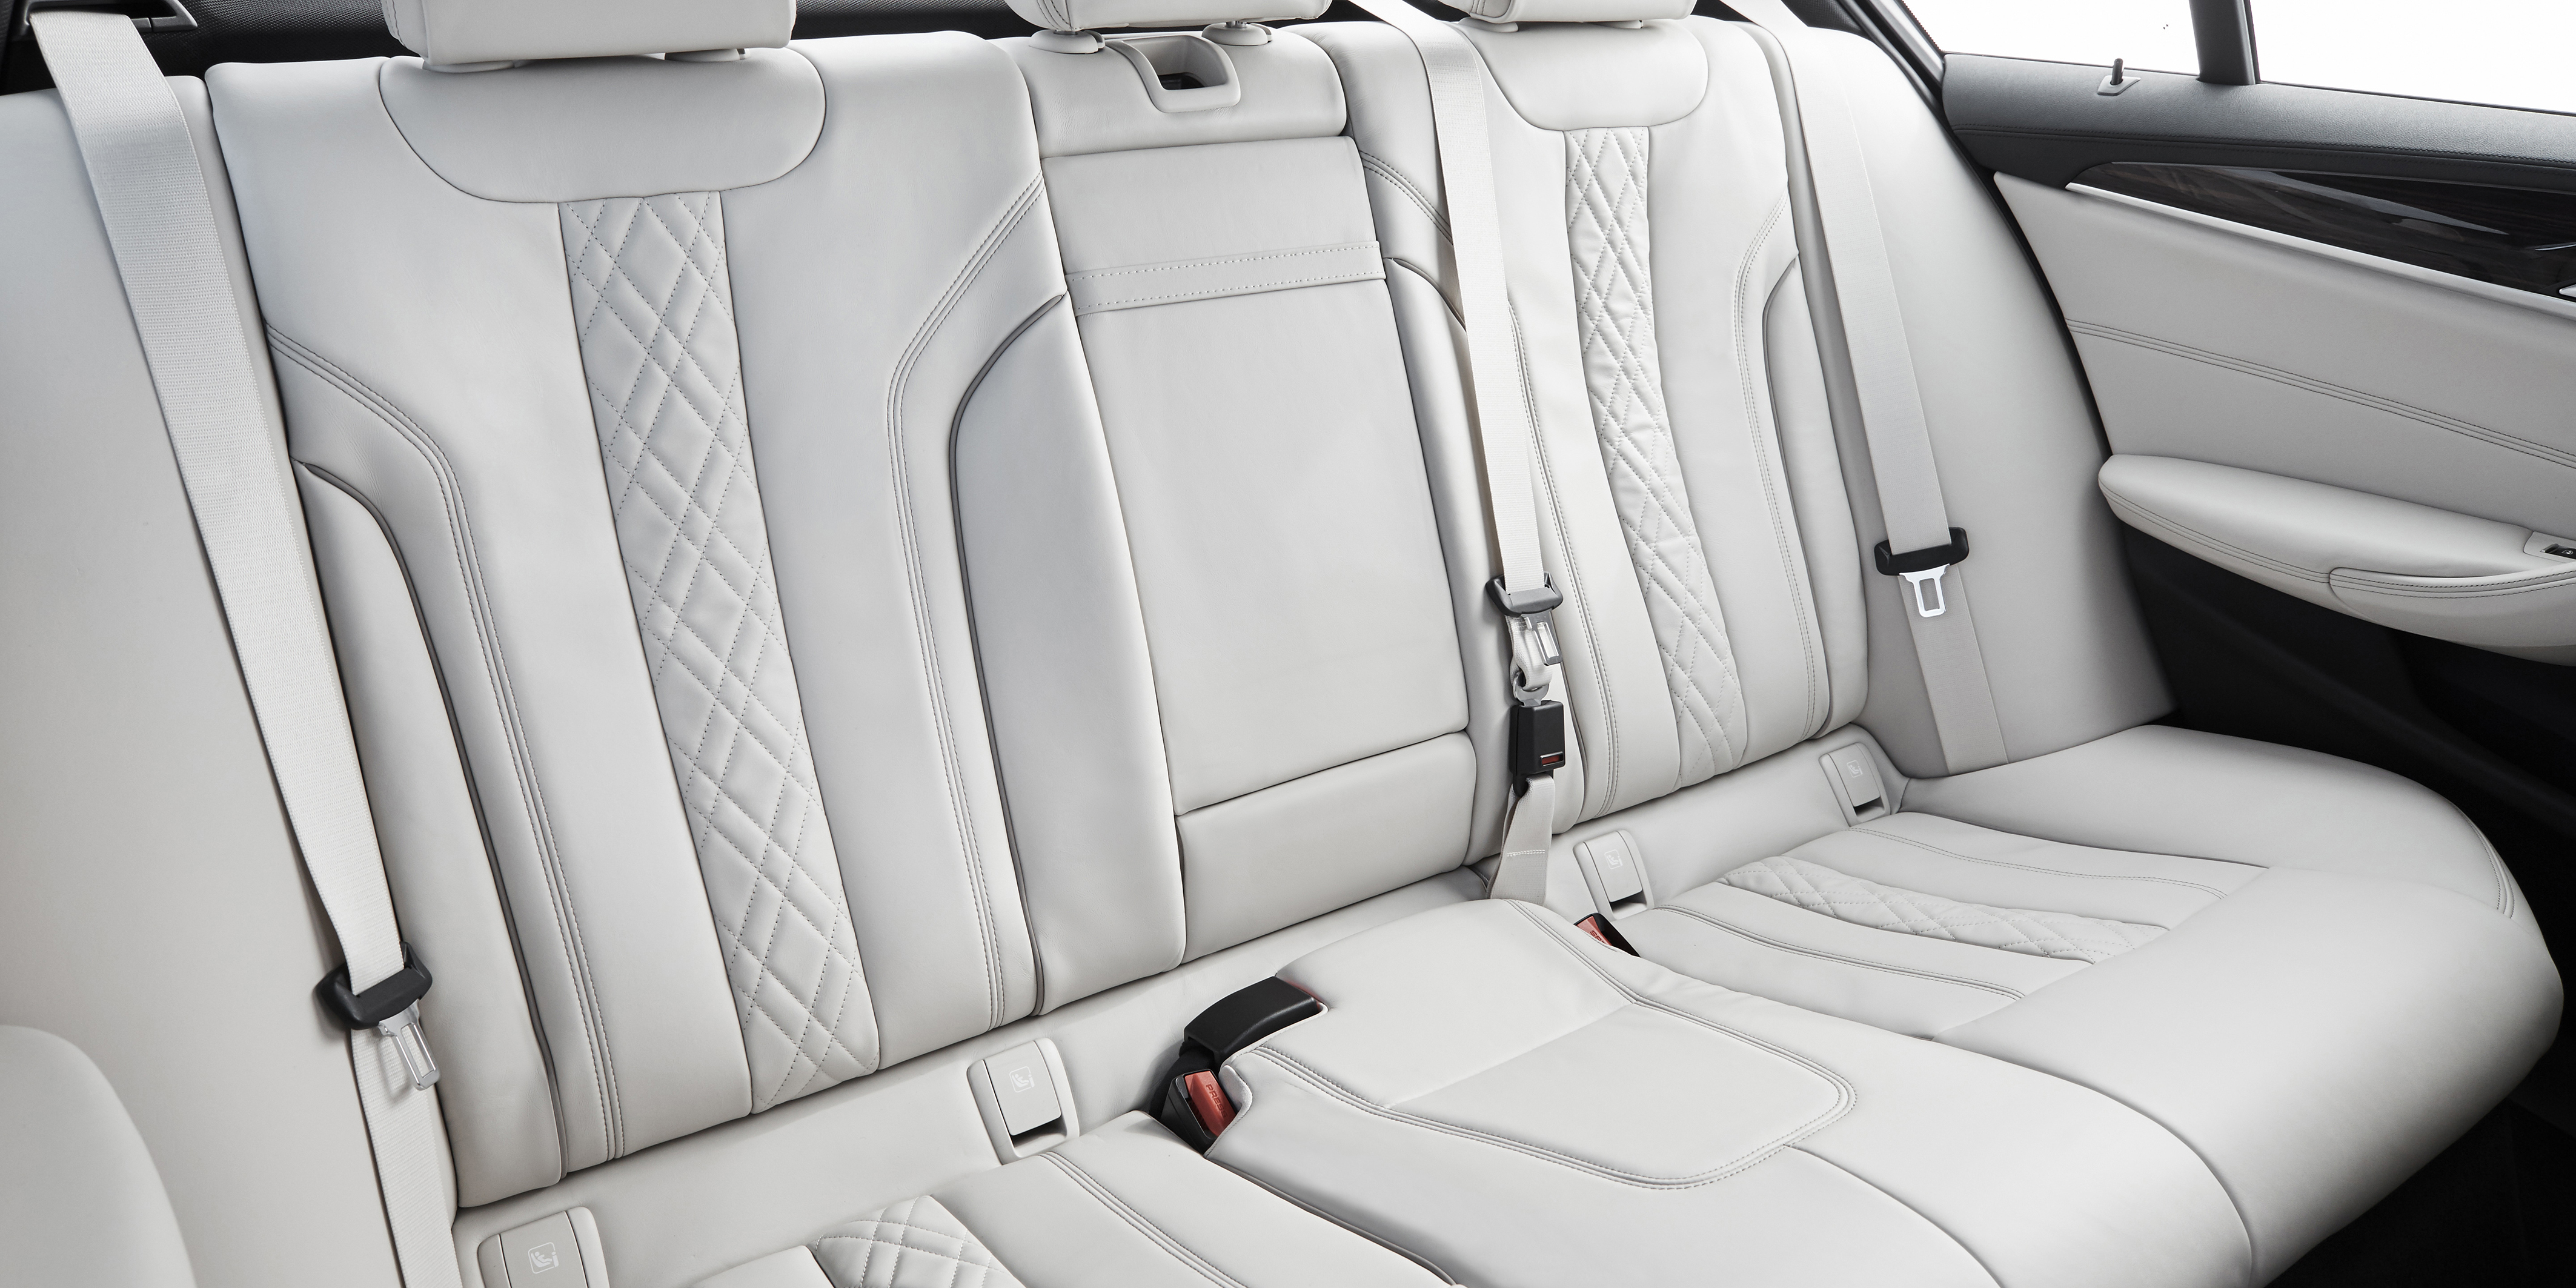 bmw 2015 5 series interior. the rear seats are comfy even for long journeys bmw 2015 5 series interior